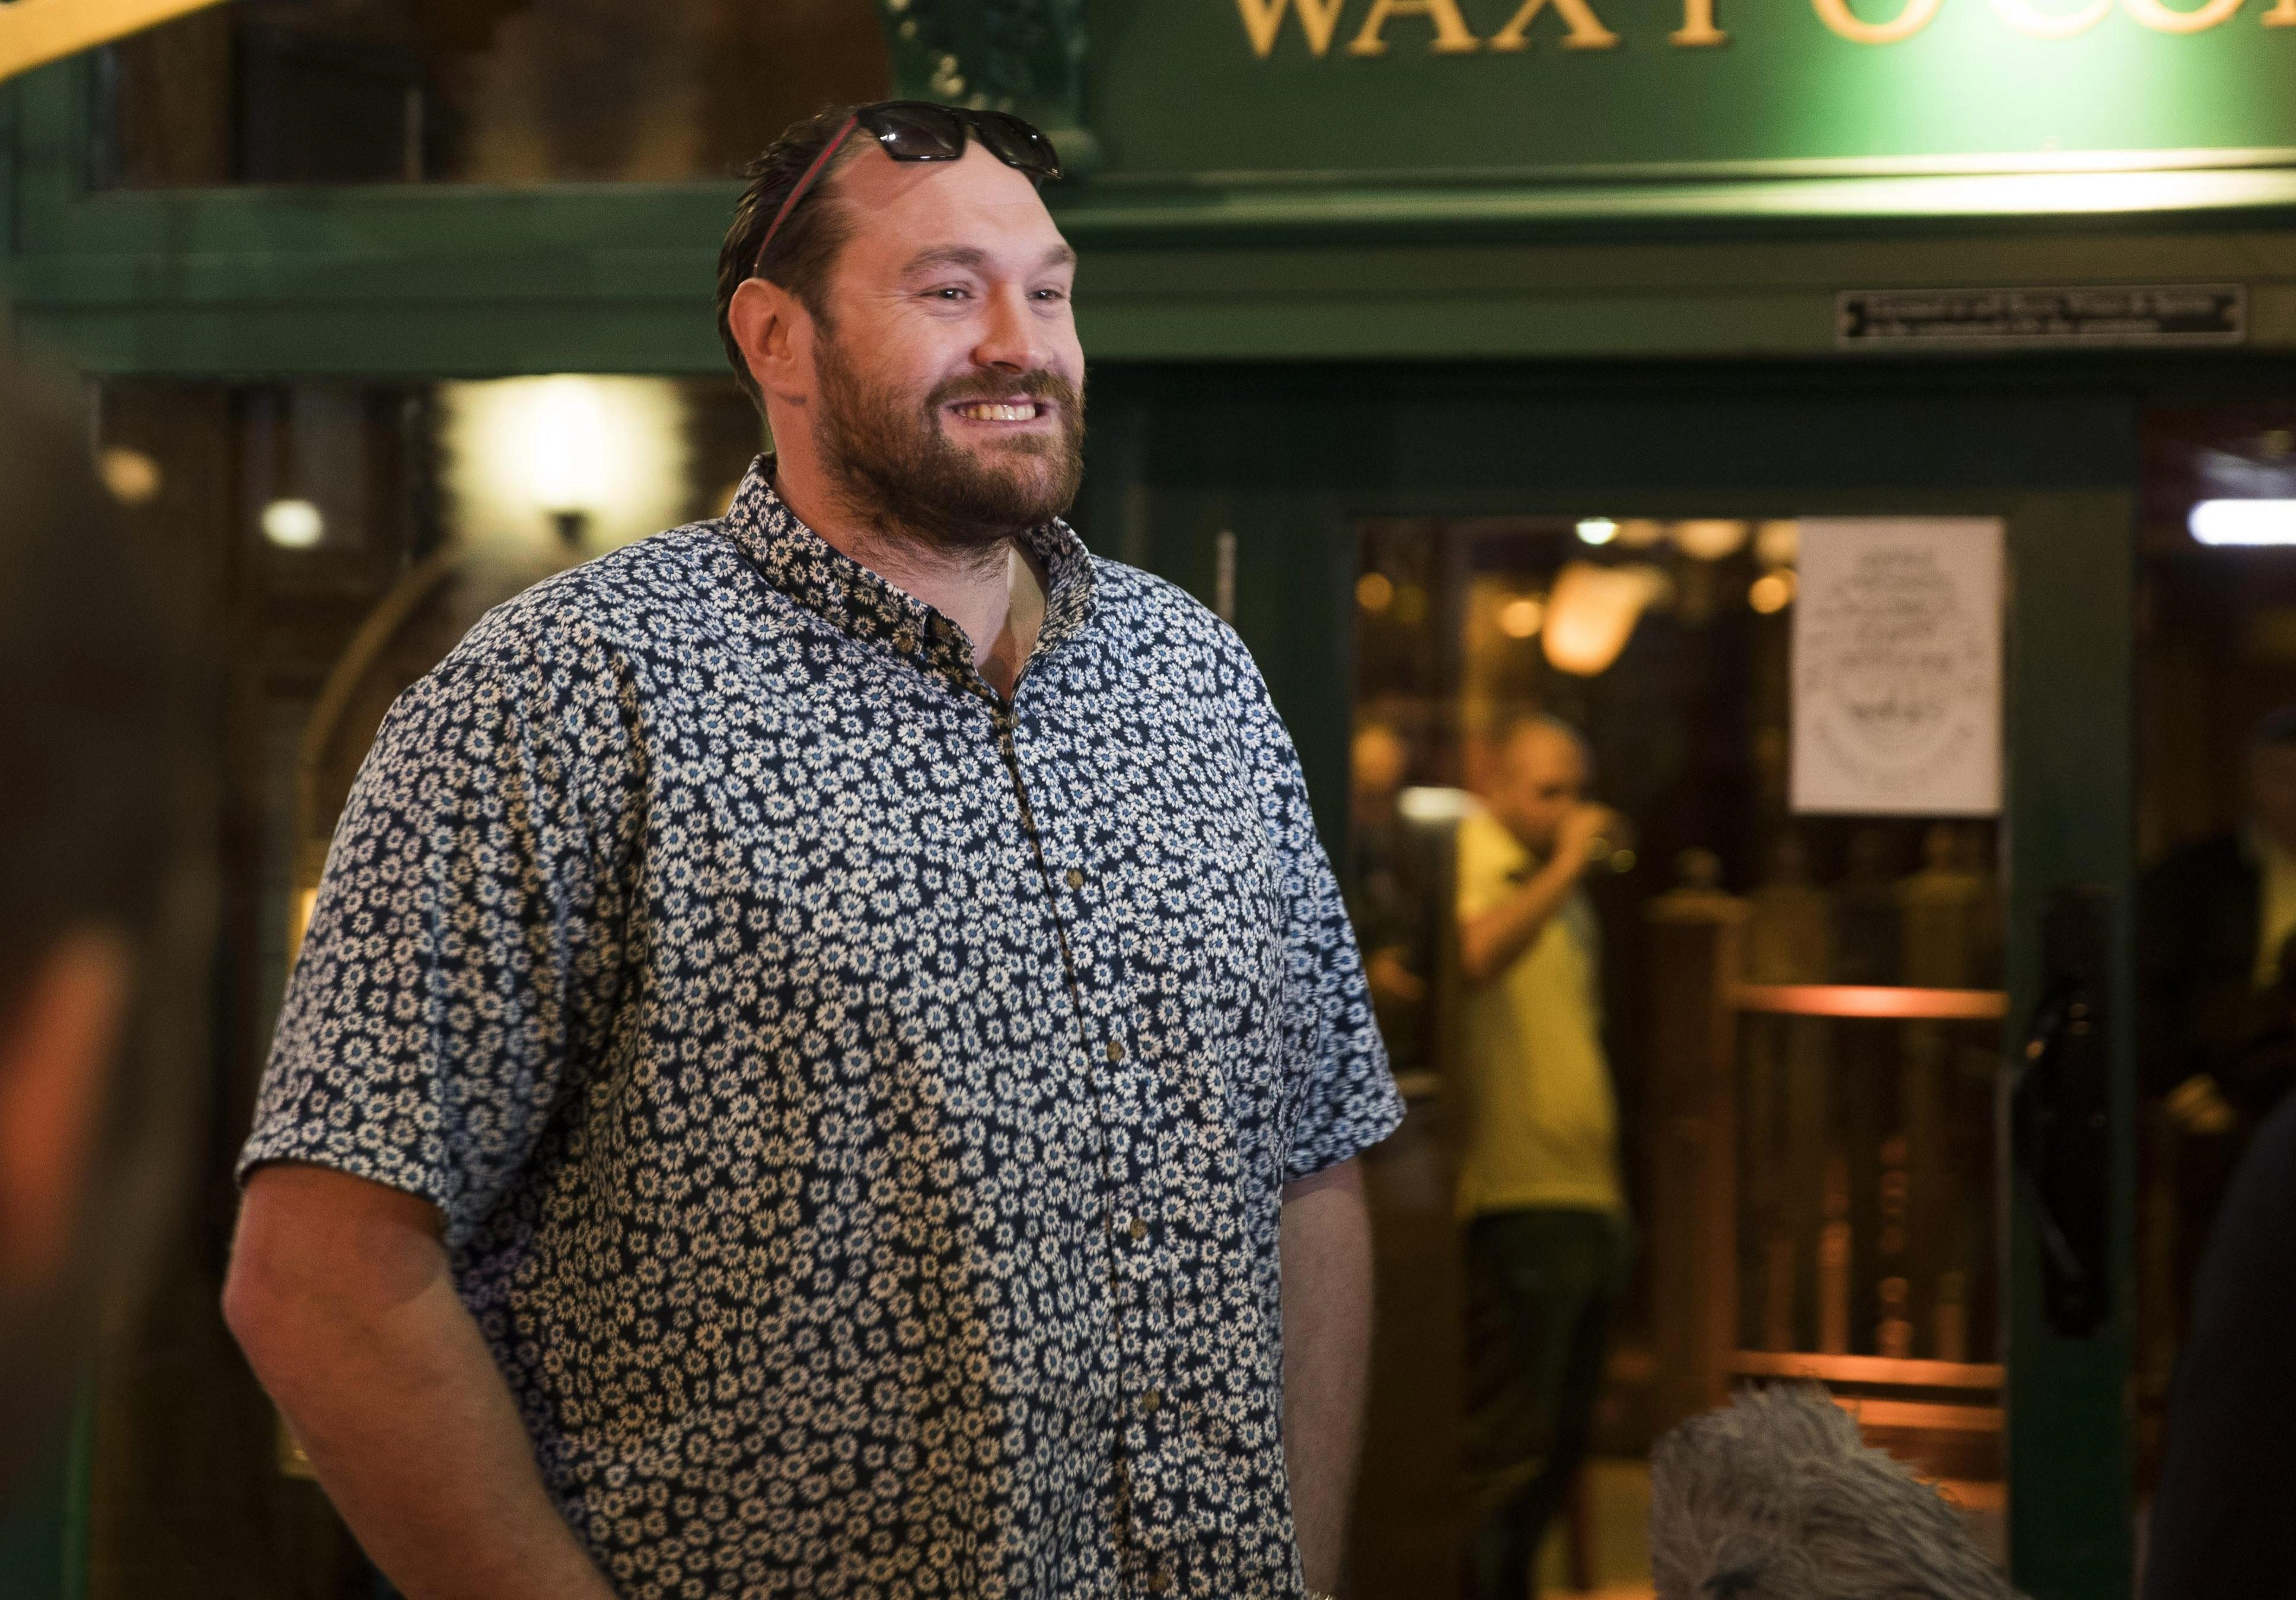 Fury piled on the pounds as he battled depression